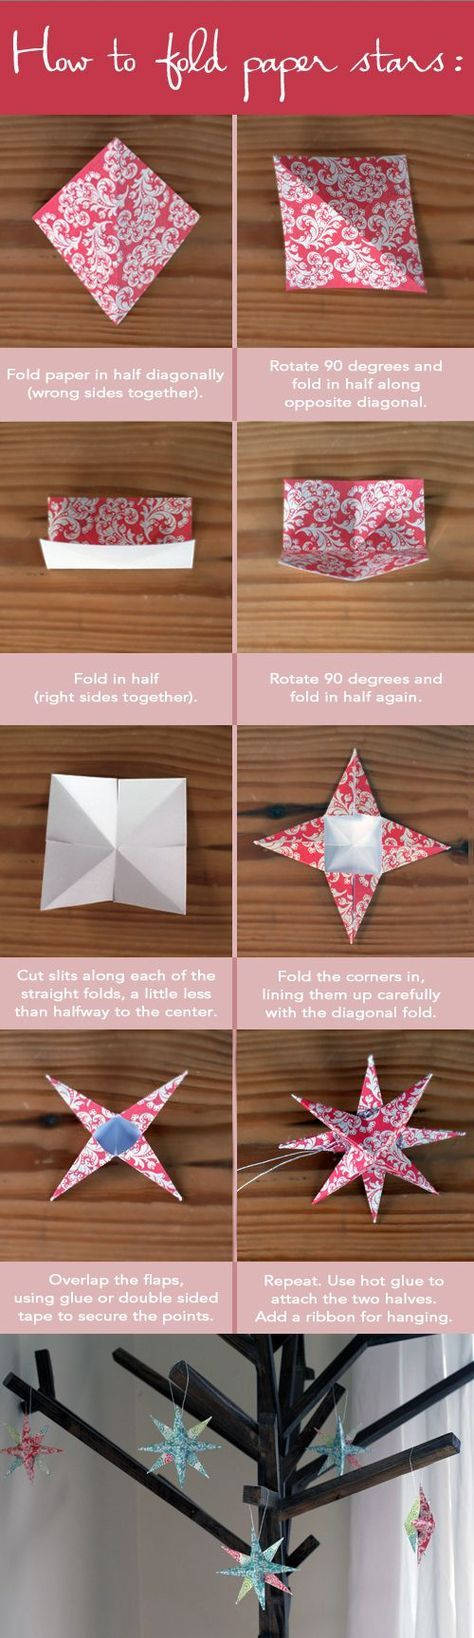 How to fold paper stars |